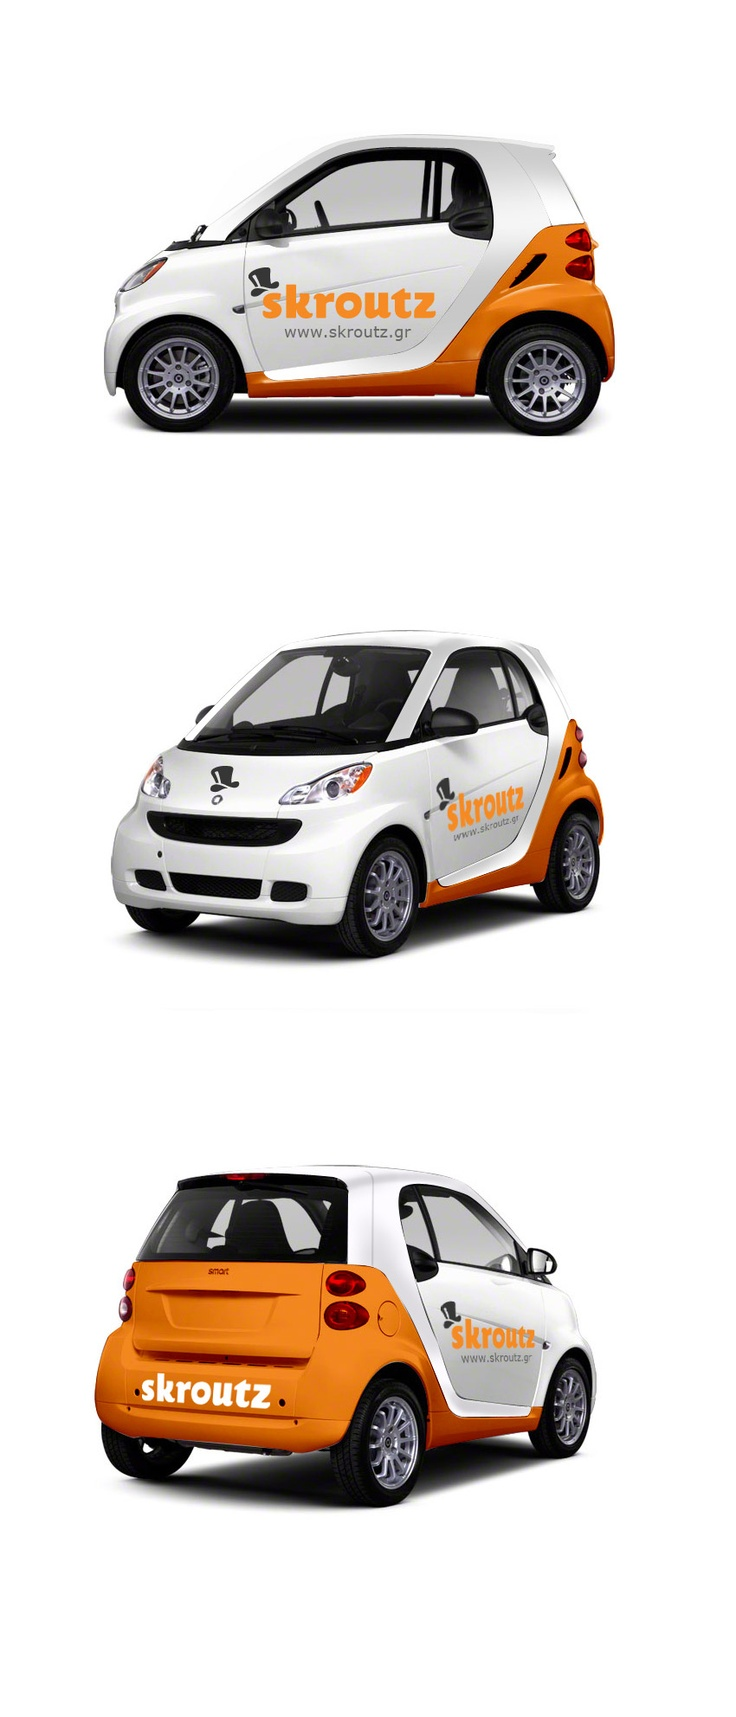 Our brand new #Skroutz Smart